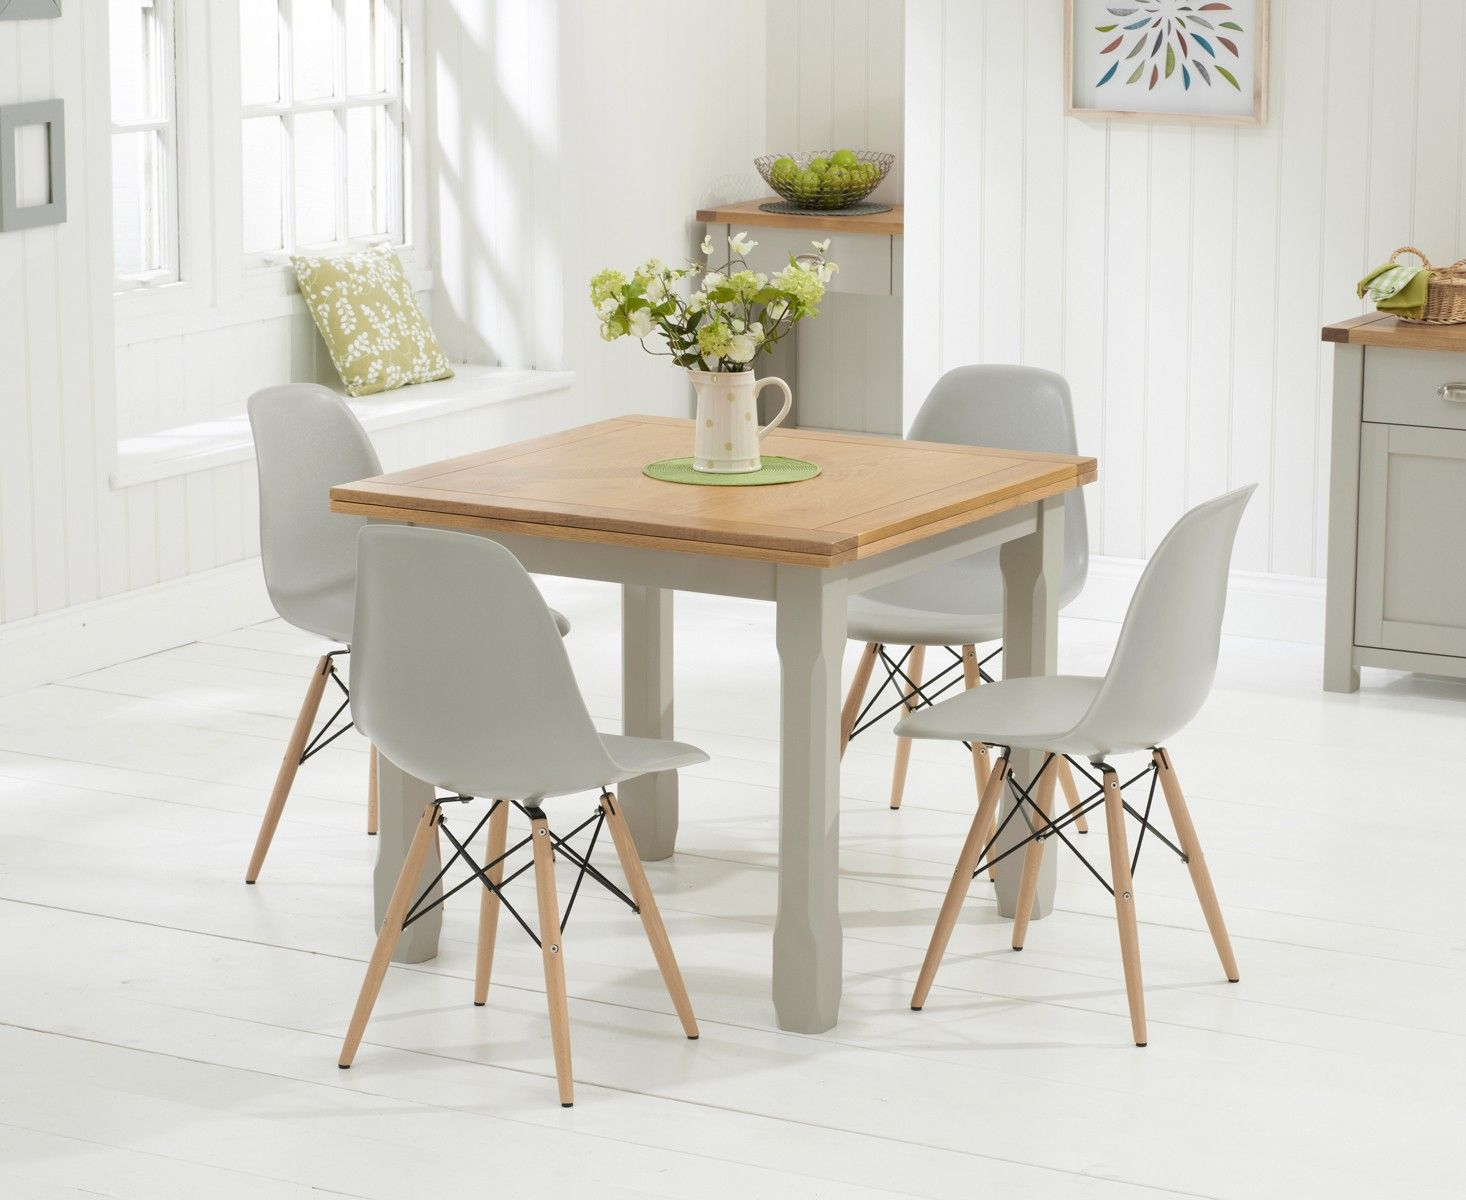 Somerset 90cm Oak and Grey Flip Top Extending Dining Table